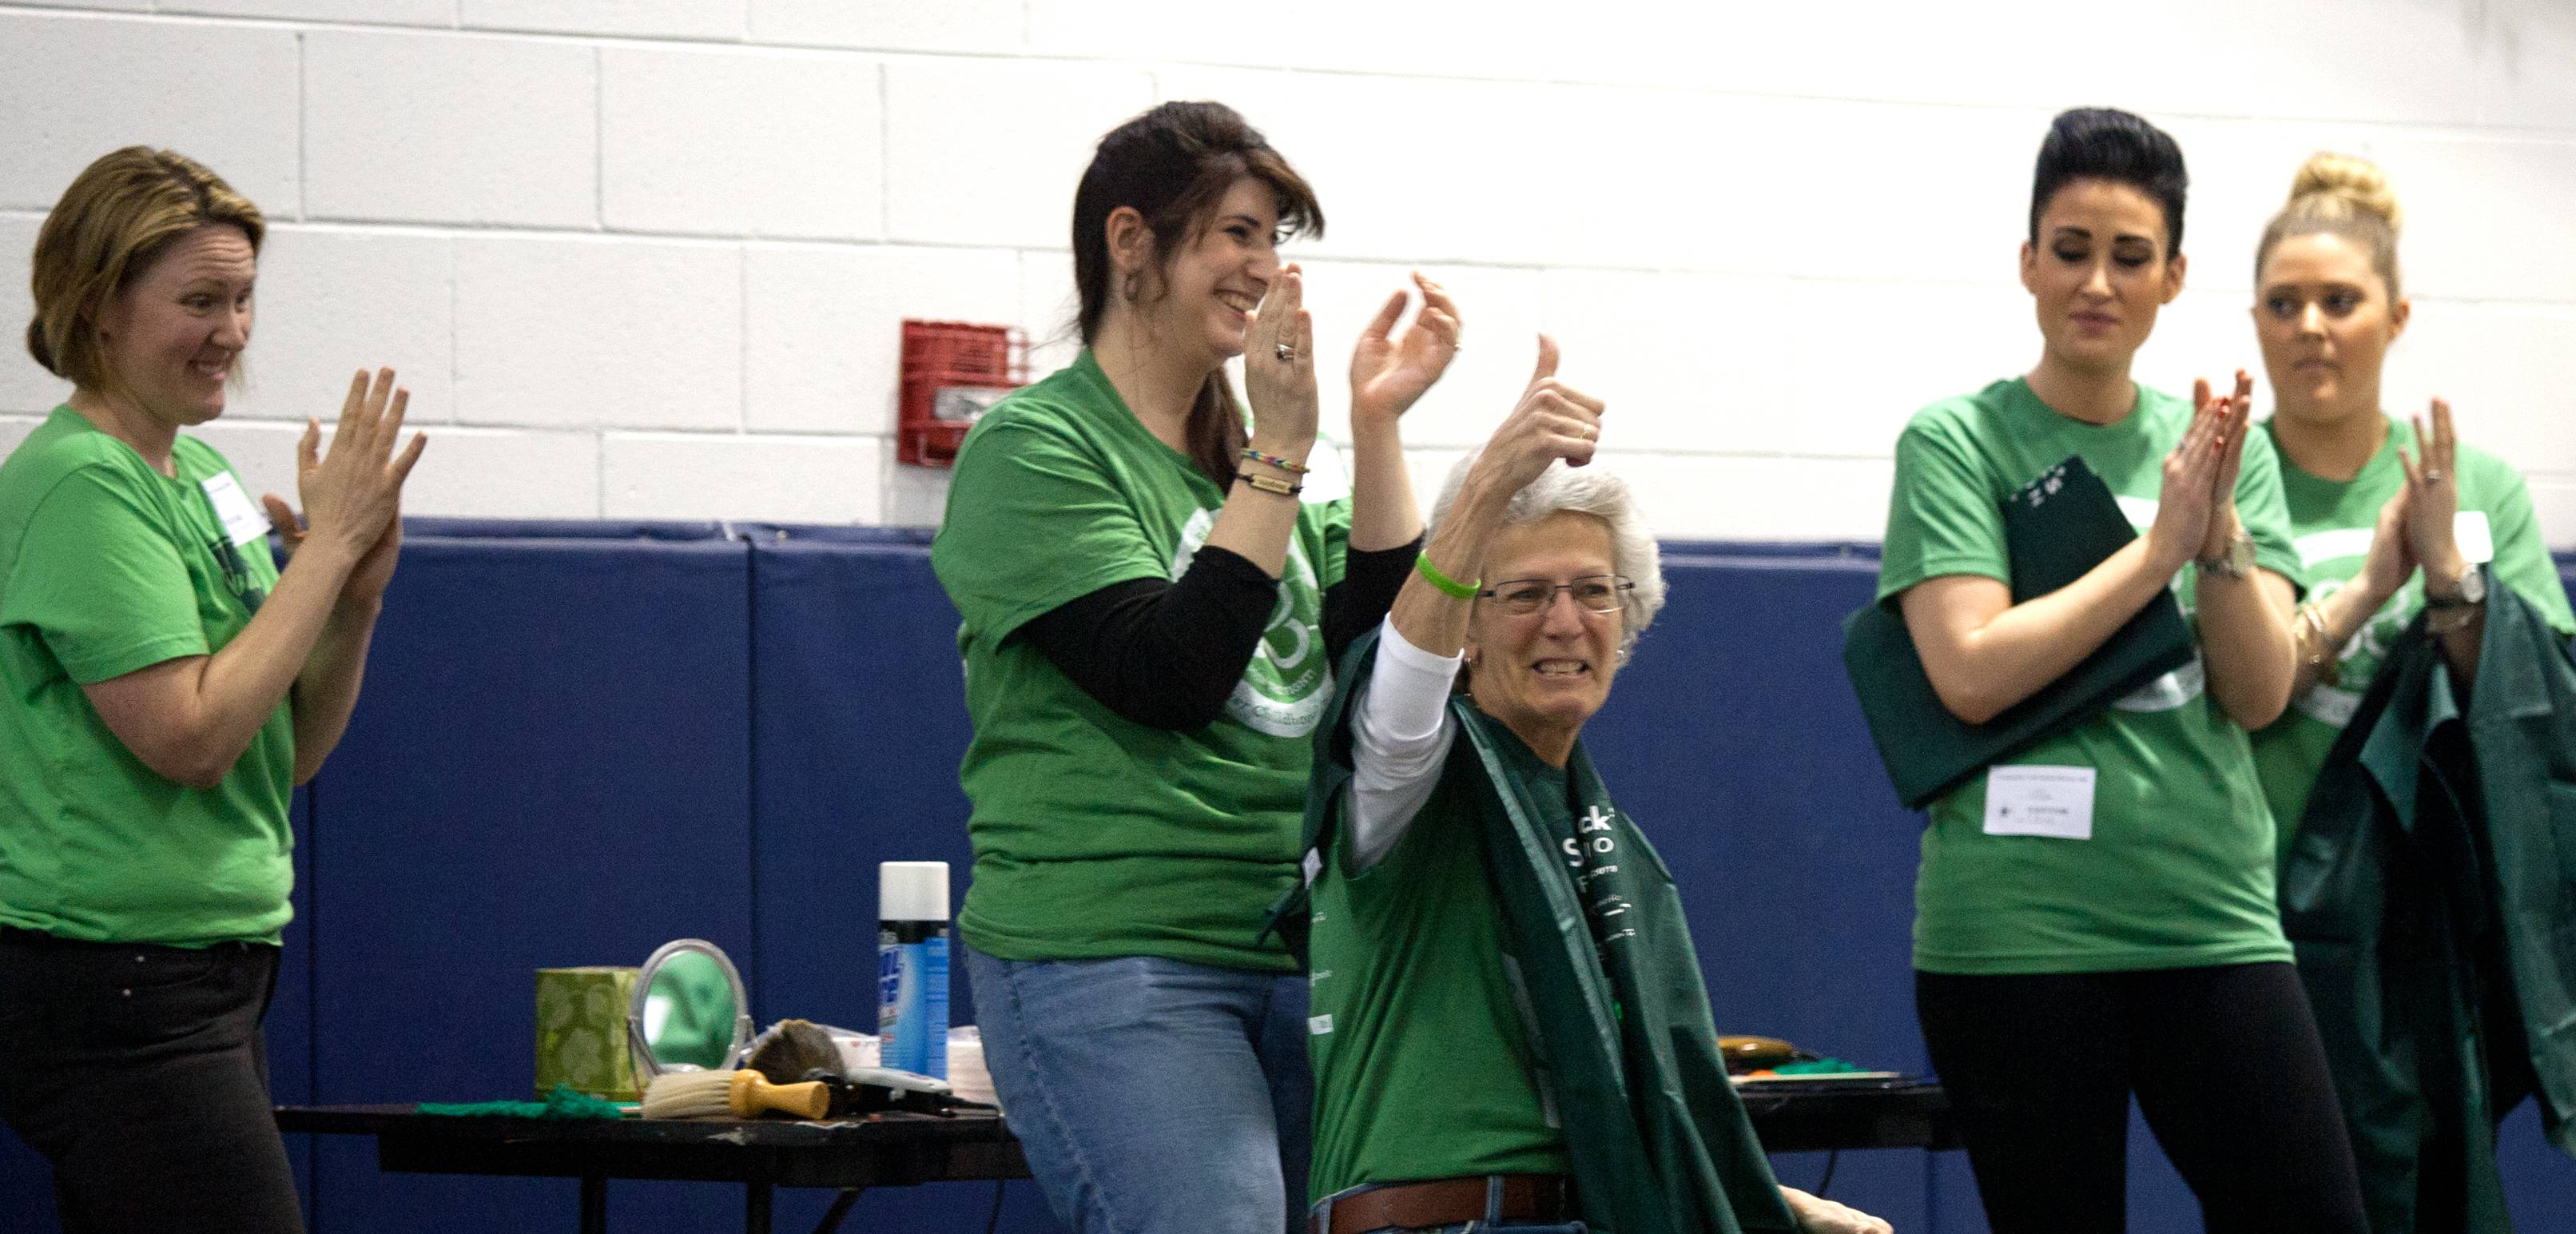 Nancy Shirley gives the thumbs-up before getting her head shaved Friday during a St. Baldrick's fundraiser at Madison Elementary School in Wheaton.